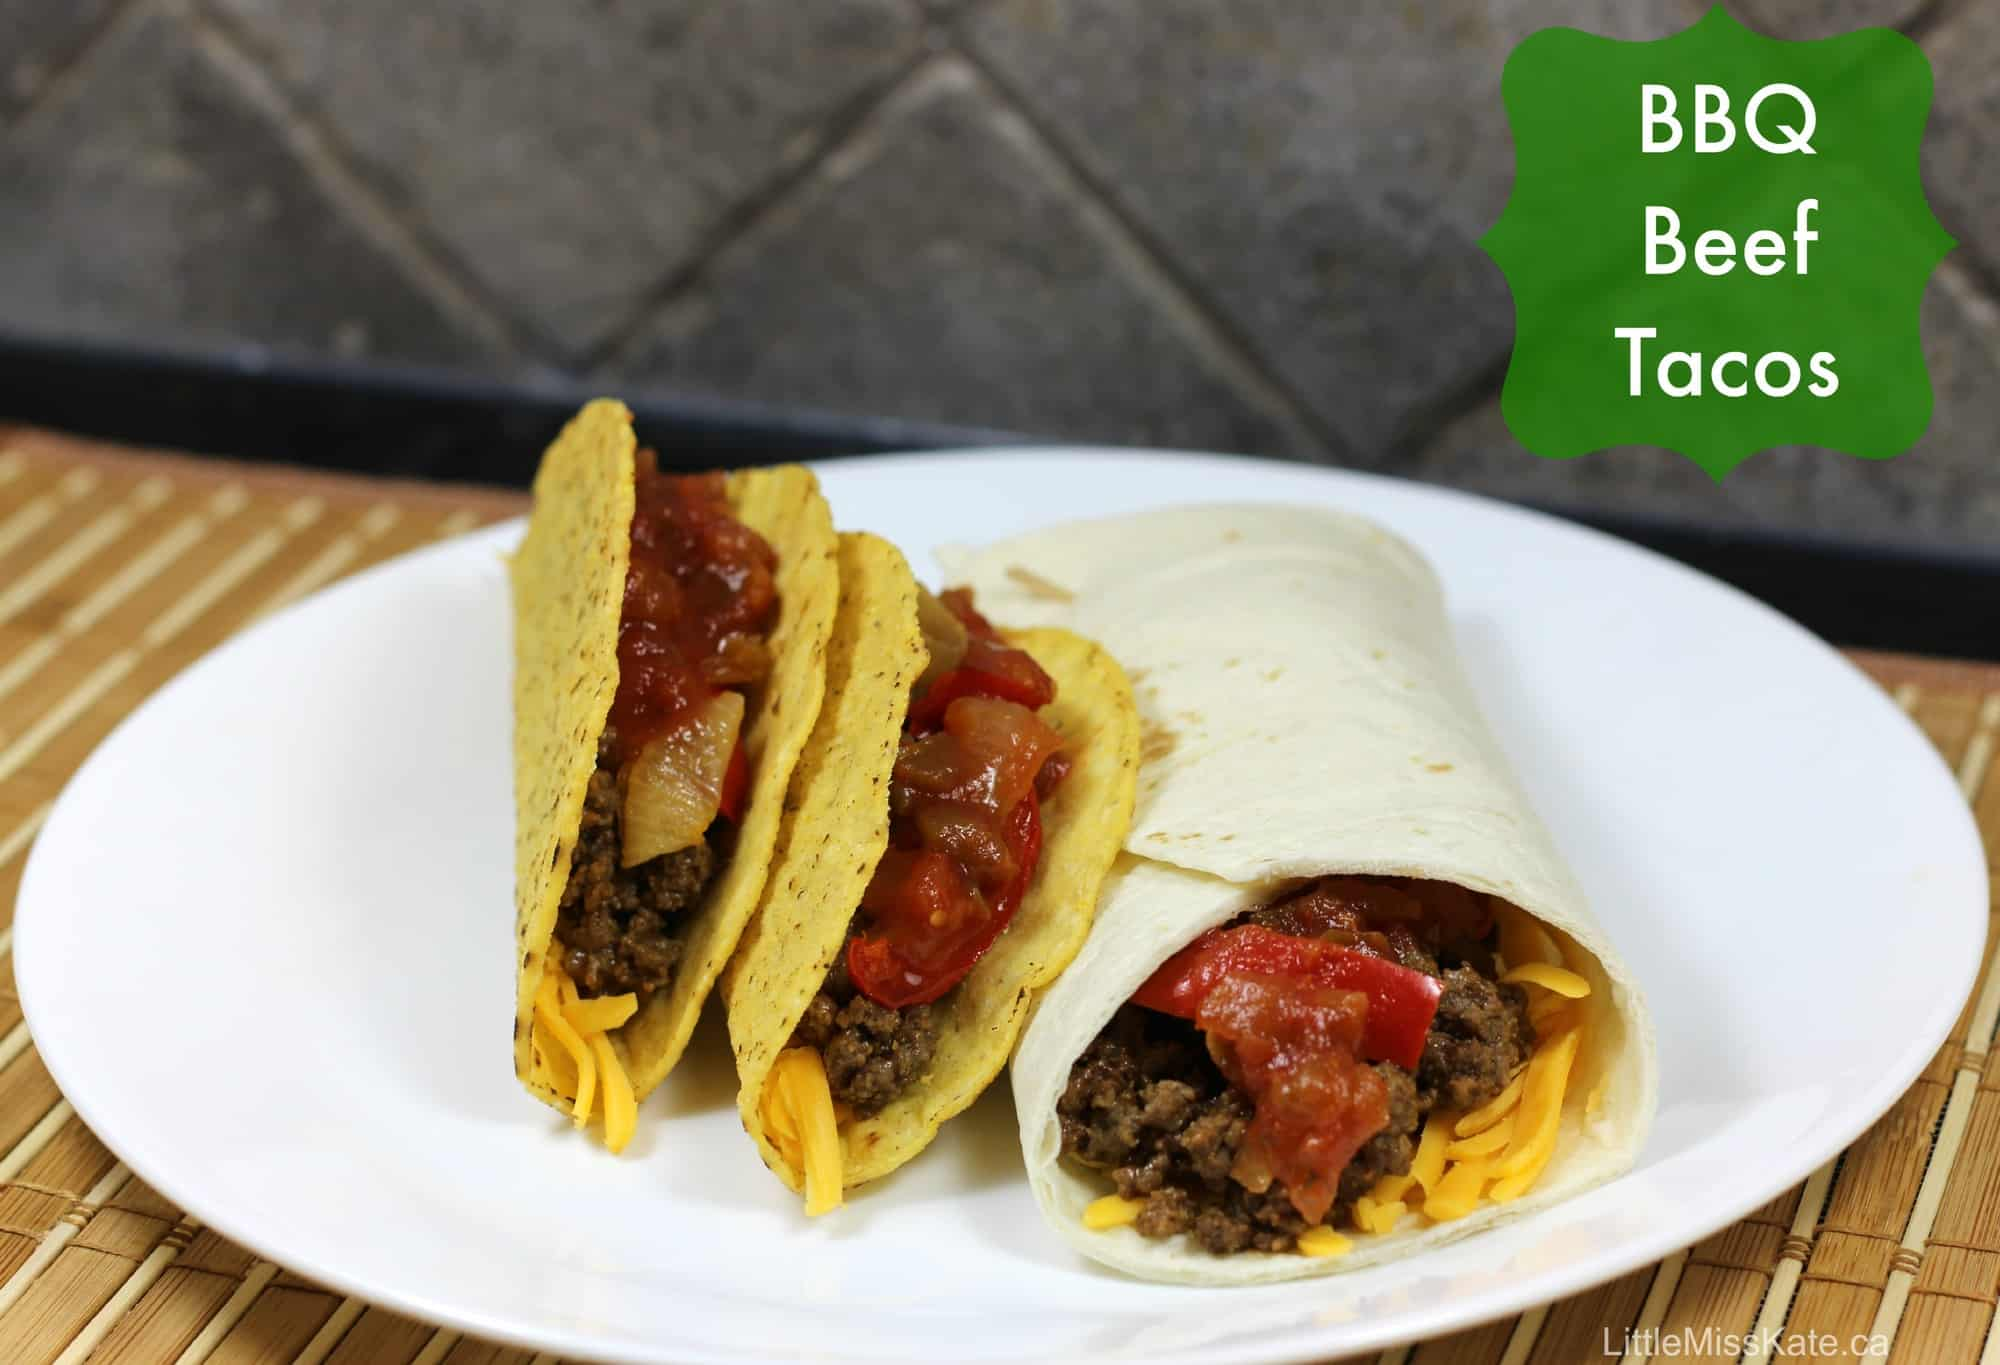 Healthy dinner ideas bbq beef taco recipe whatscooking for Hamburger dinner ideas for tonight